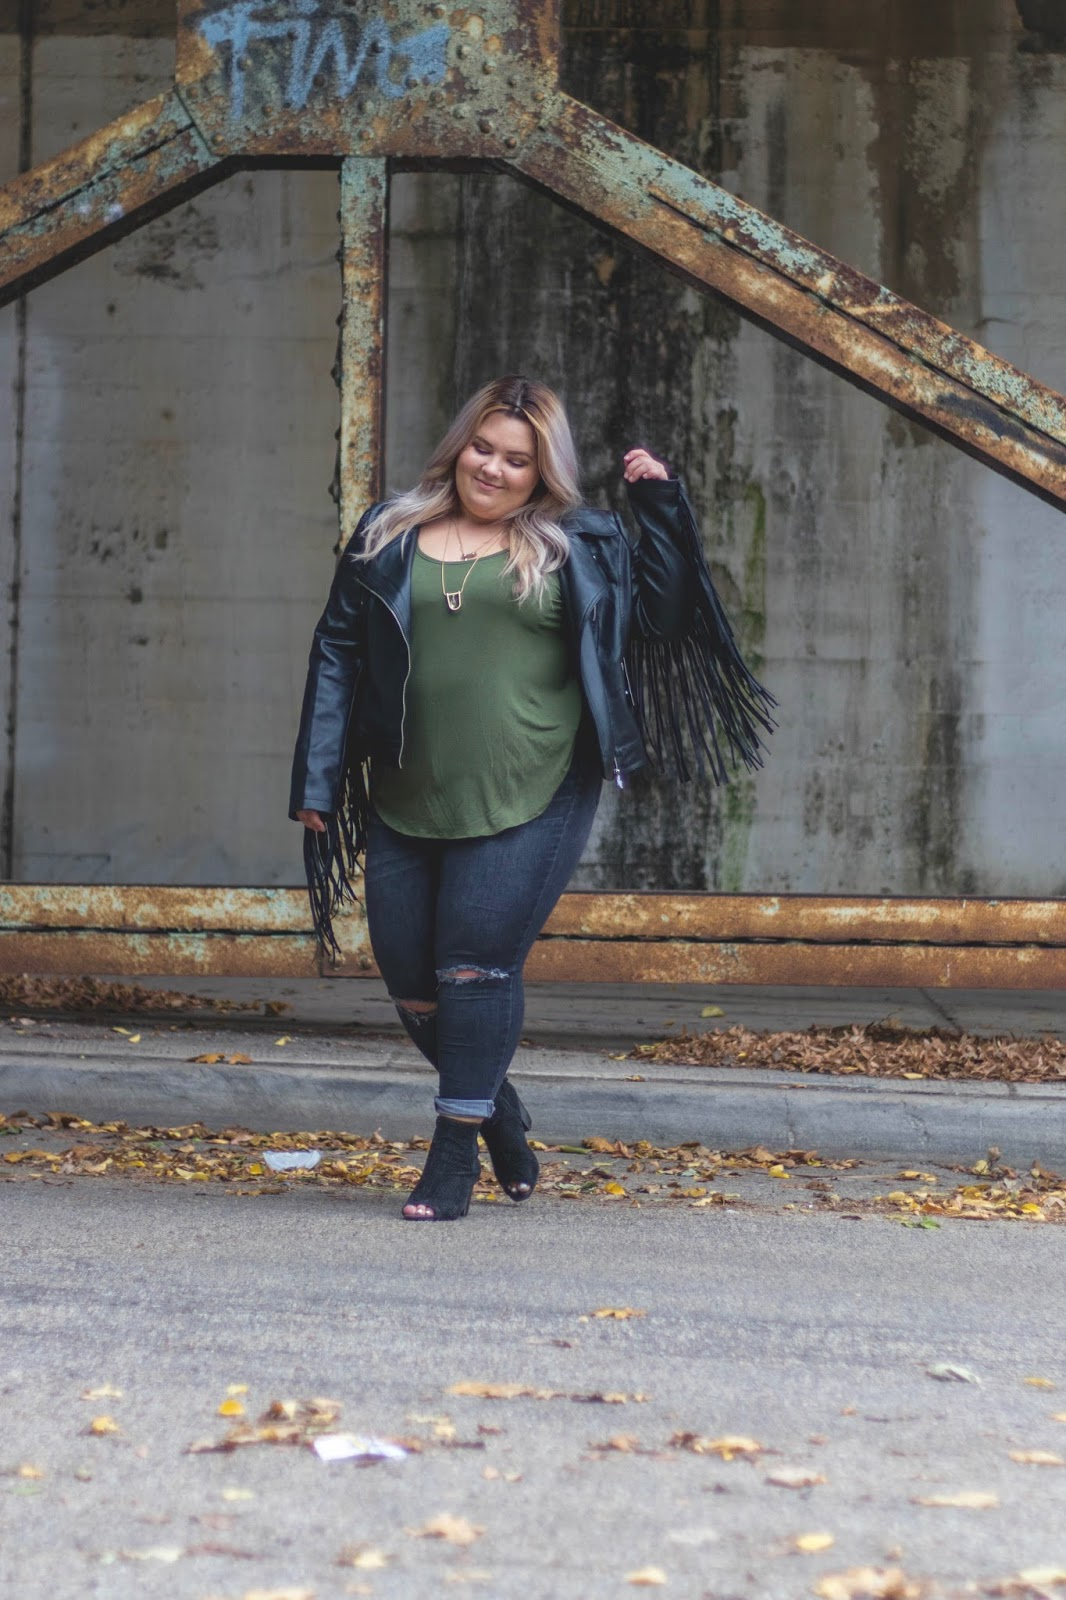 natalie in the city, natalie Craig, plus size fashion, Chicago plus size fashion blogger, affordable plus size clothes, fashion to figure, fringe faux leather moto jacket, plus size leather jacket, target mossimo jeans, best plus size jeans, open toed wide width booties, midwest blogger, Chicago plus size model, curves and confidence